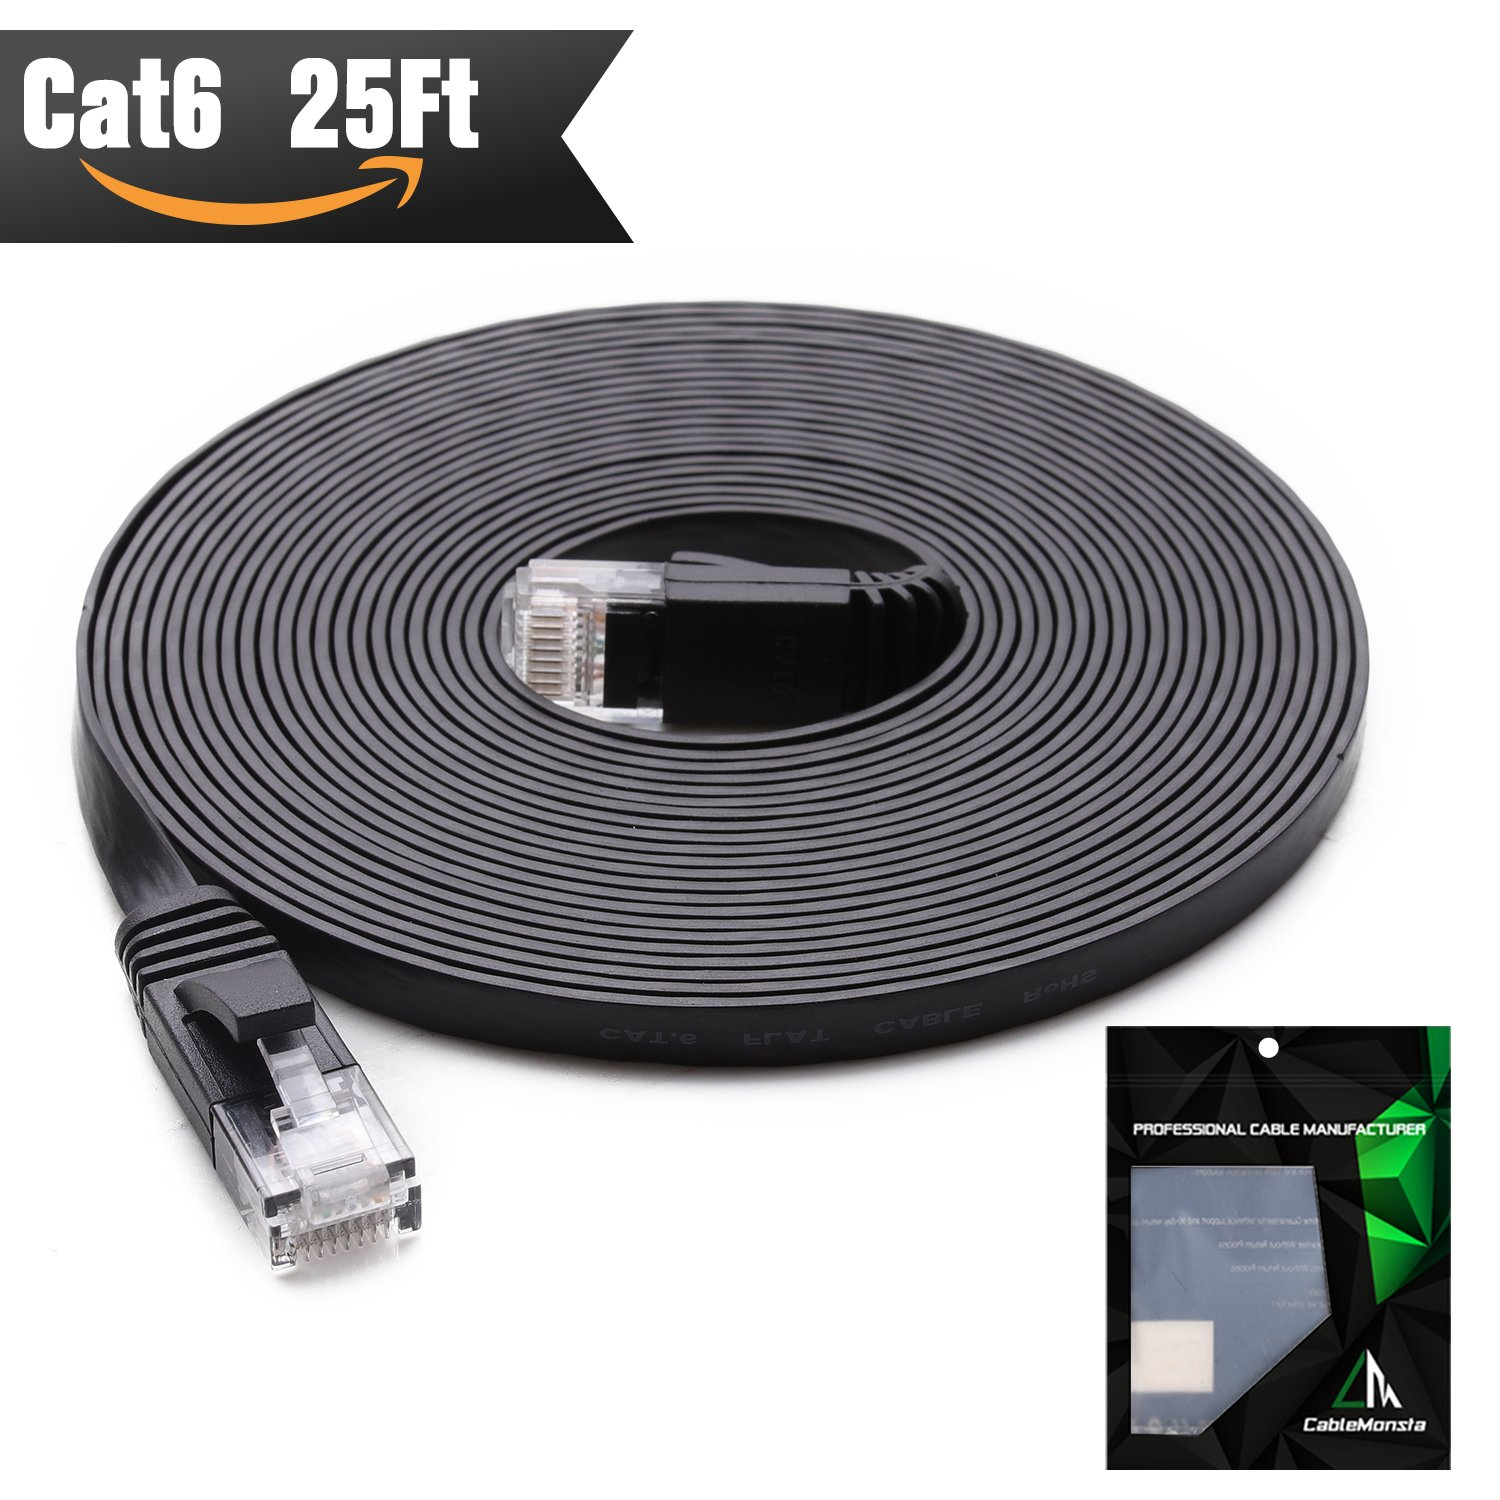 Amazon.com: Cat 6 Ethernet Cable 25 ft (At a Cat5e Price but Higher ...